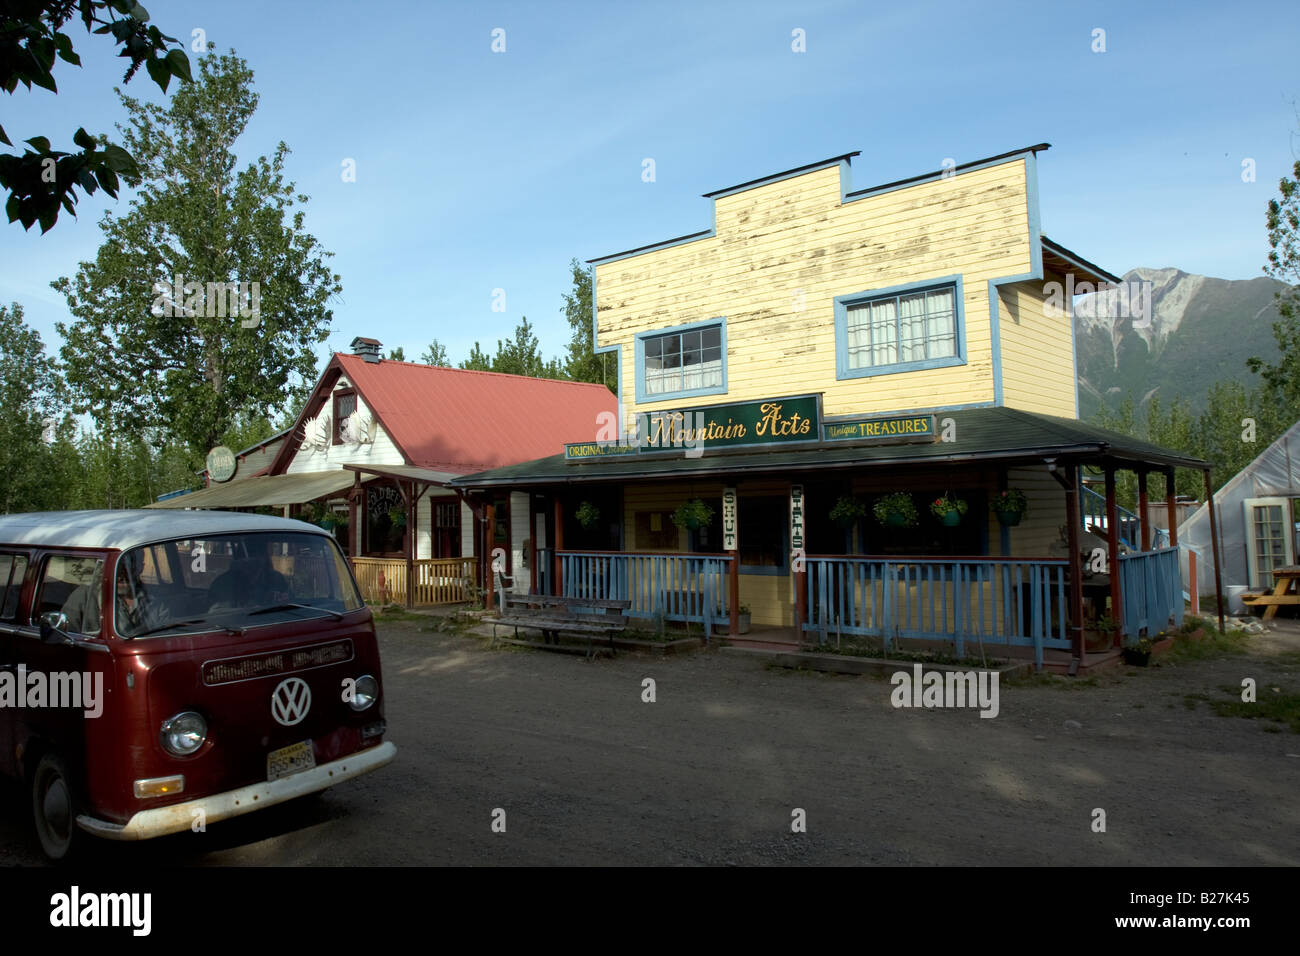 Saloon, bar and restaurant in McCarthyr, Alaska. - Stock Image